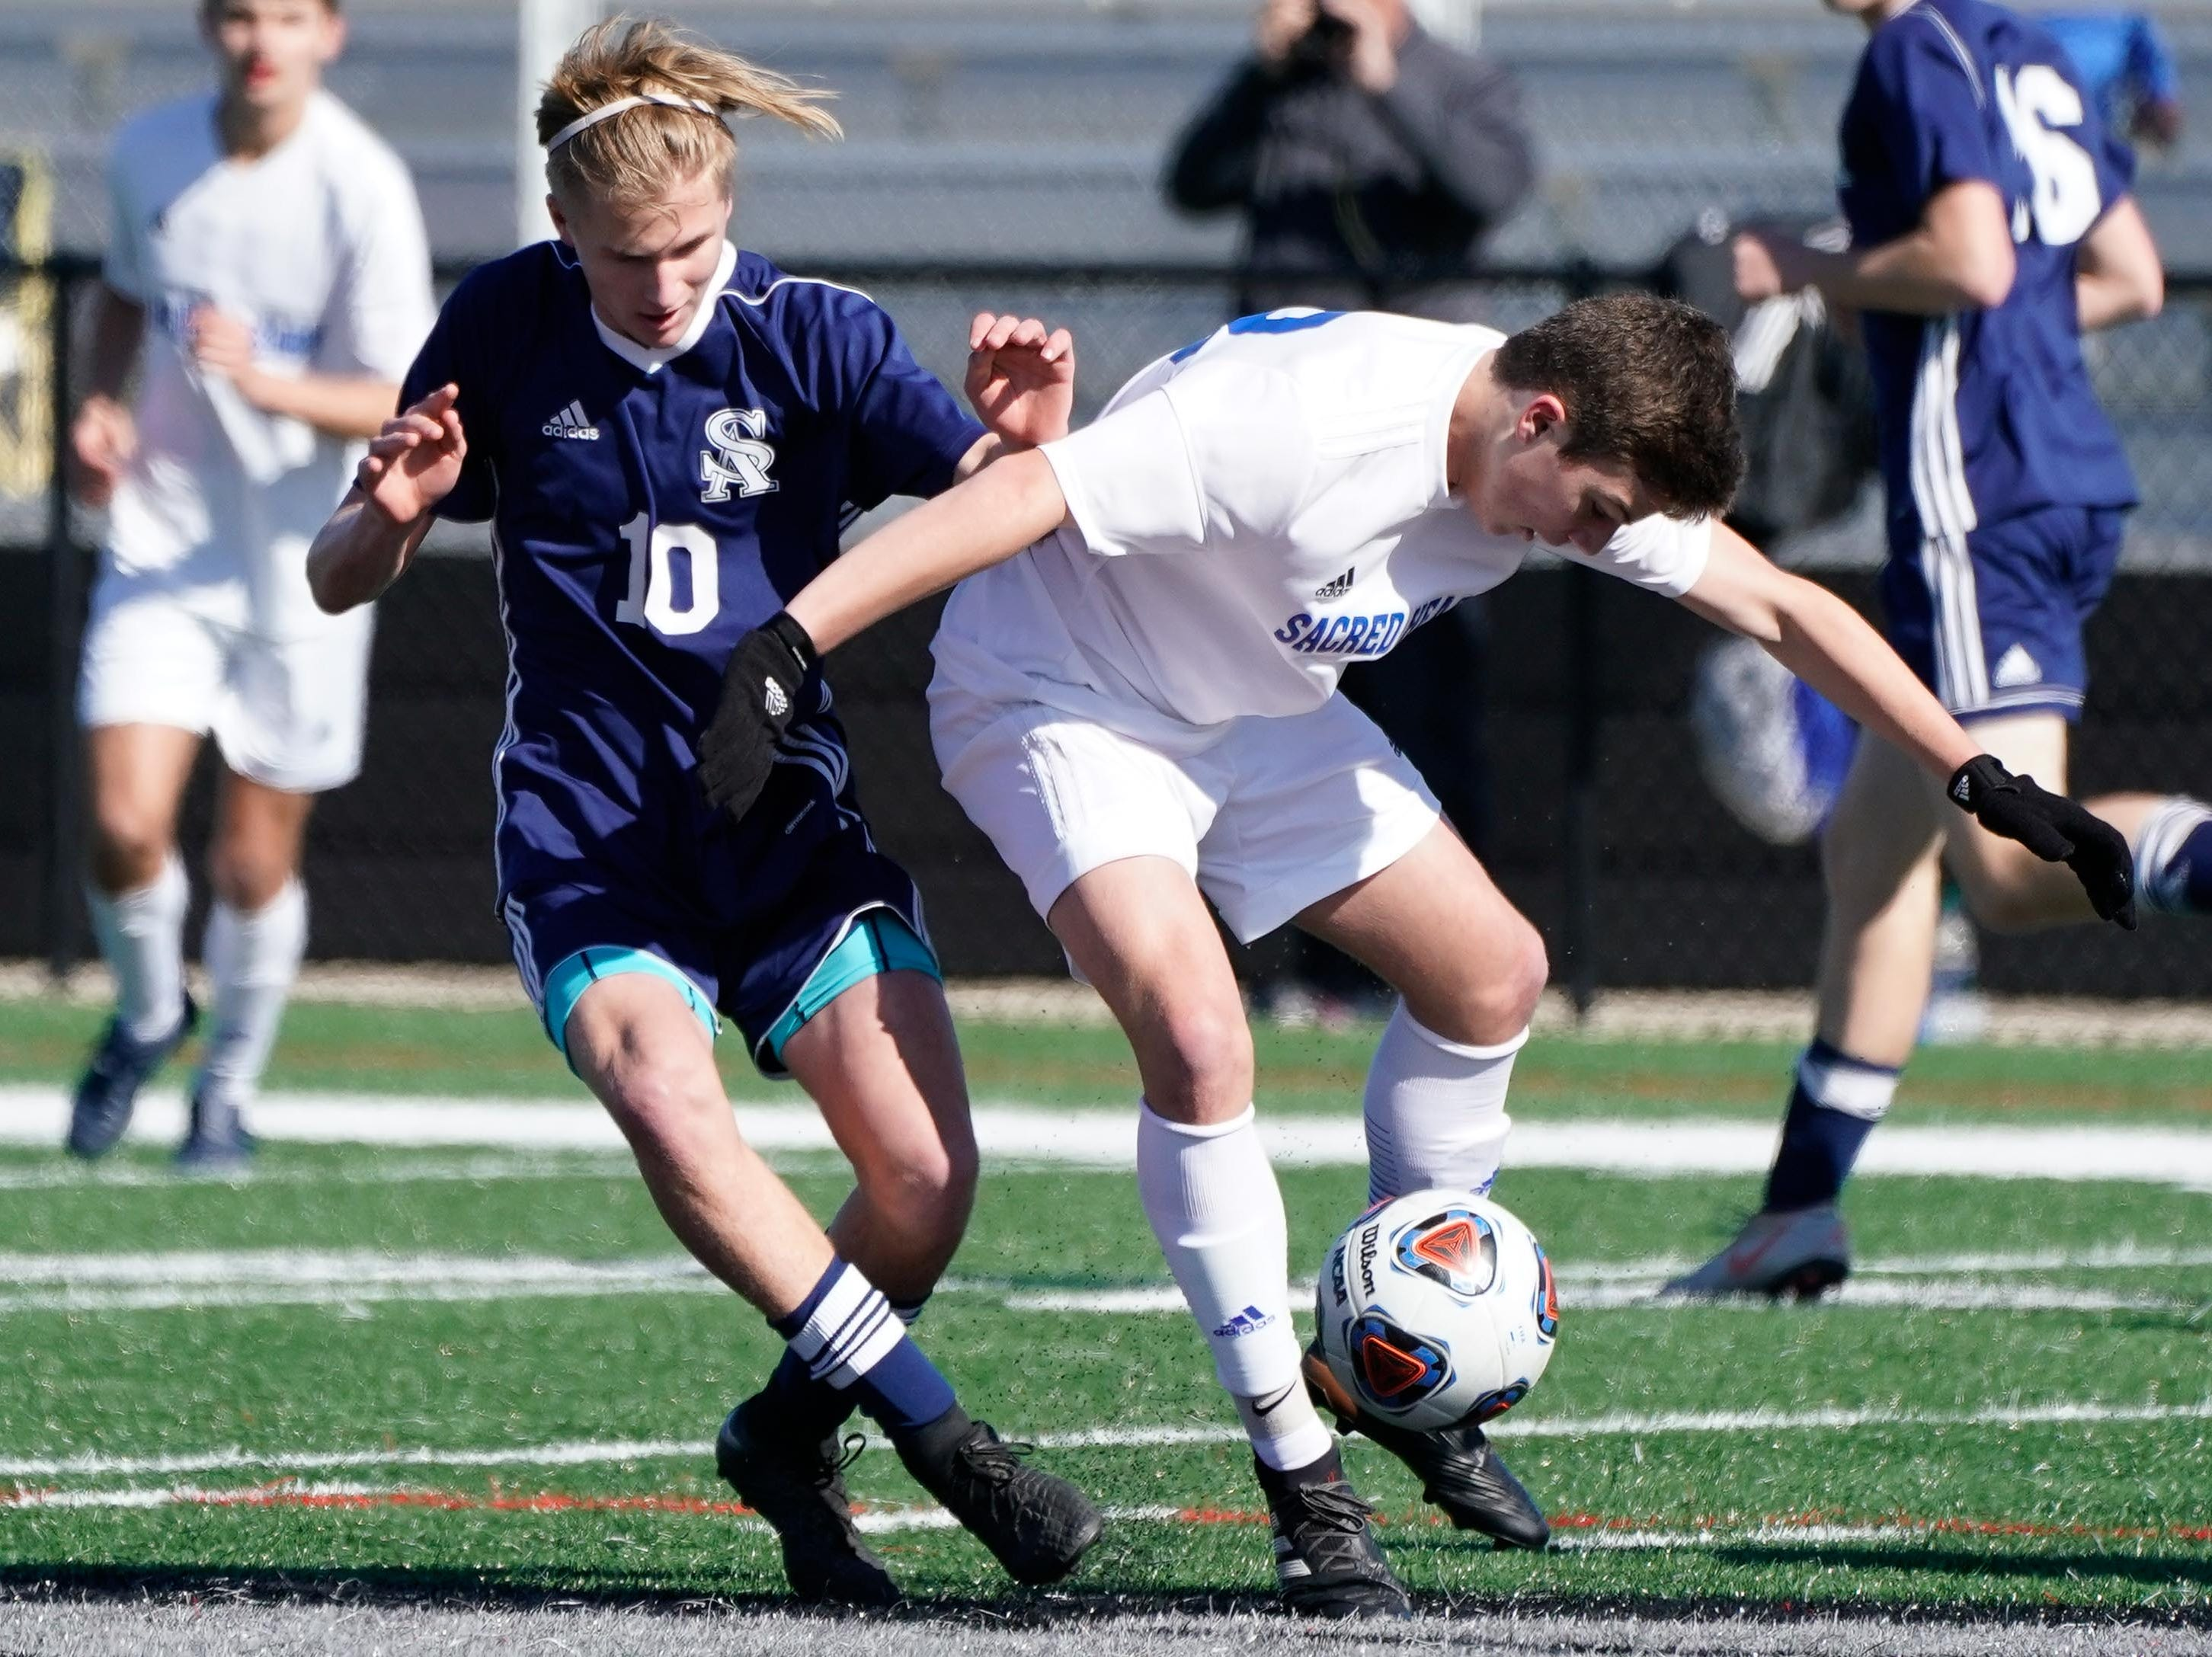 St. Andrew's Jackson Bataille (10) battles for a ball with Sacred Heart's Bennett Gibson (28) during the MHSAA 1A,2A,3A  Boys Soccer Championships held at Brandon High School in Brandon, MS, Saturday February 9, 2019.(Bob Smith-For The Clarion Ledger)